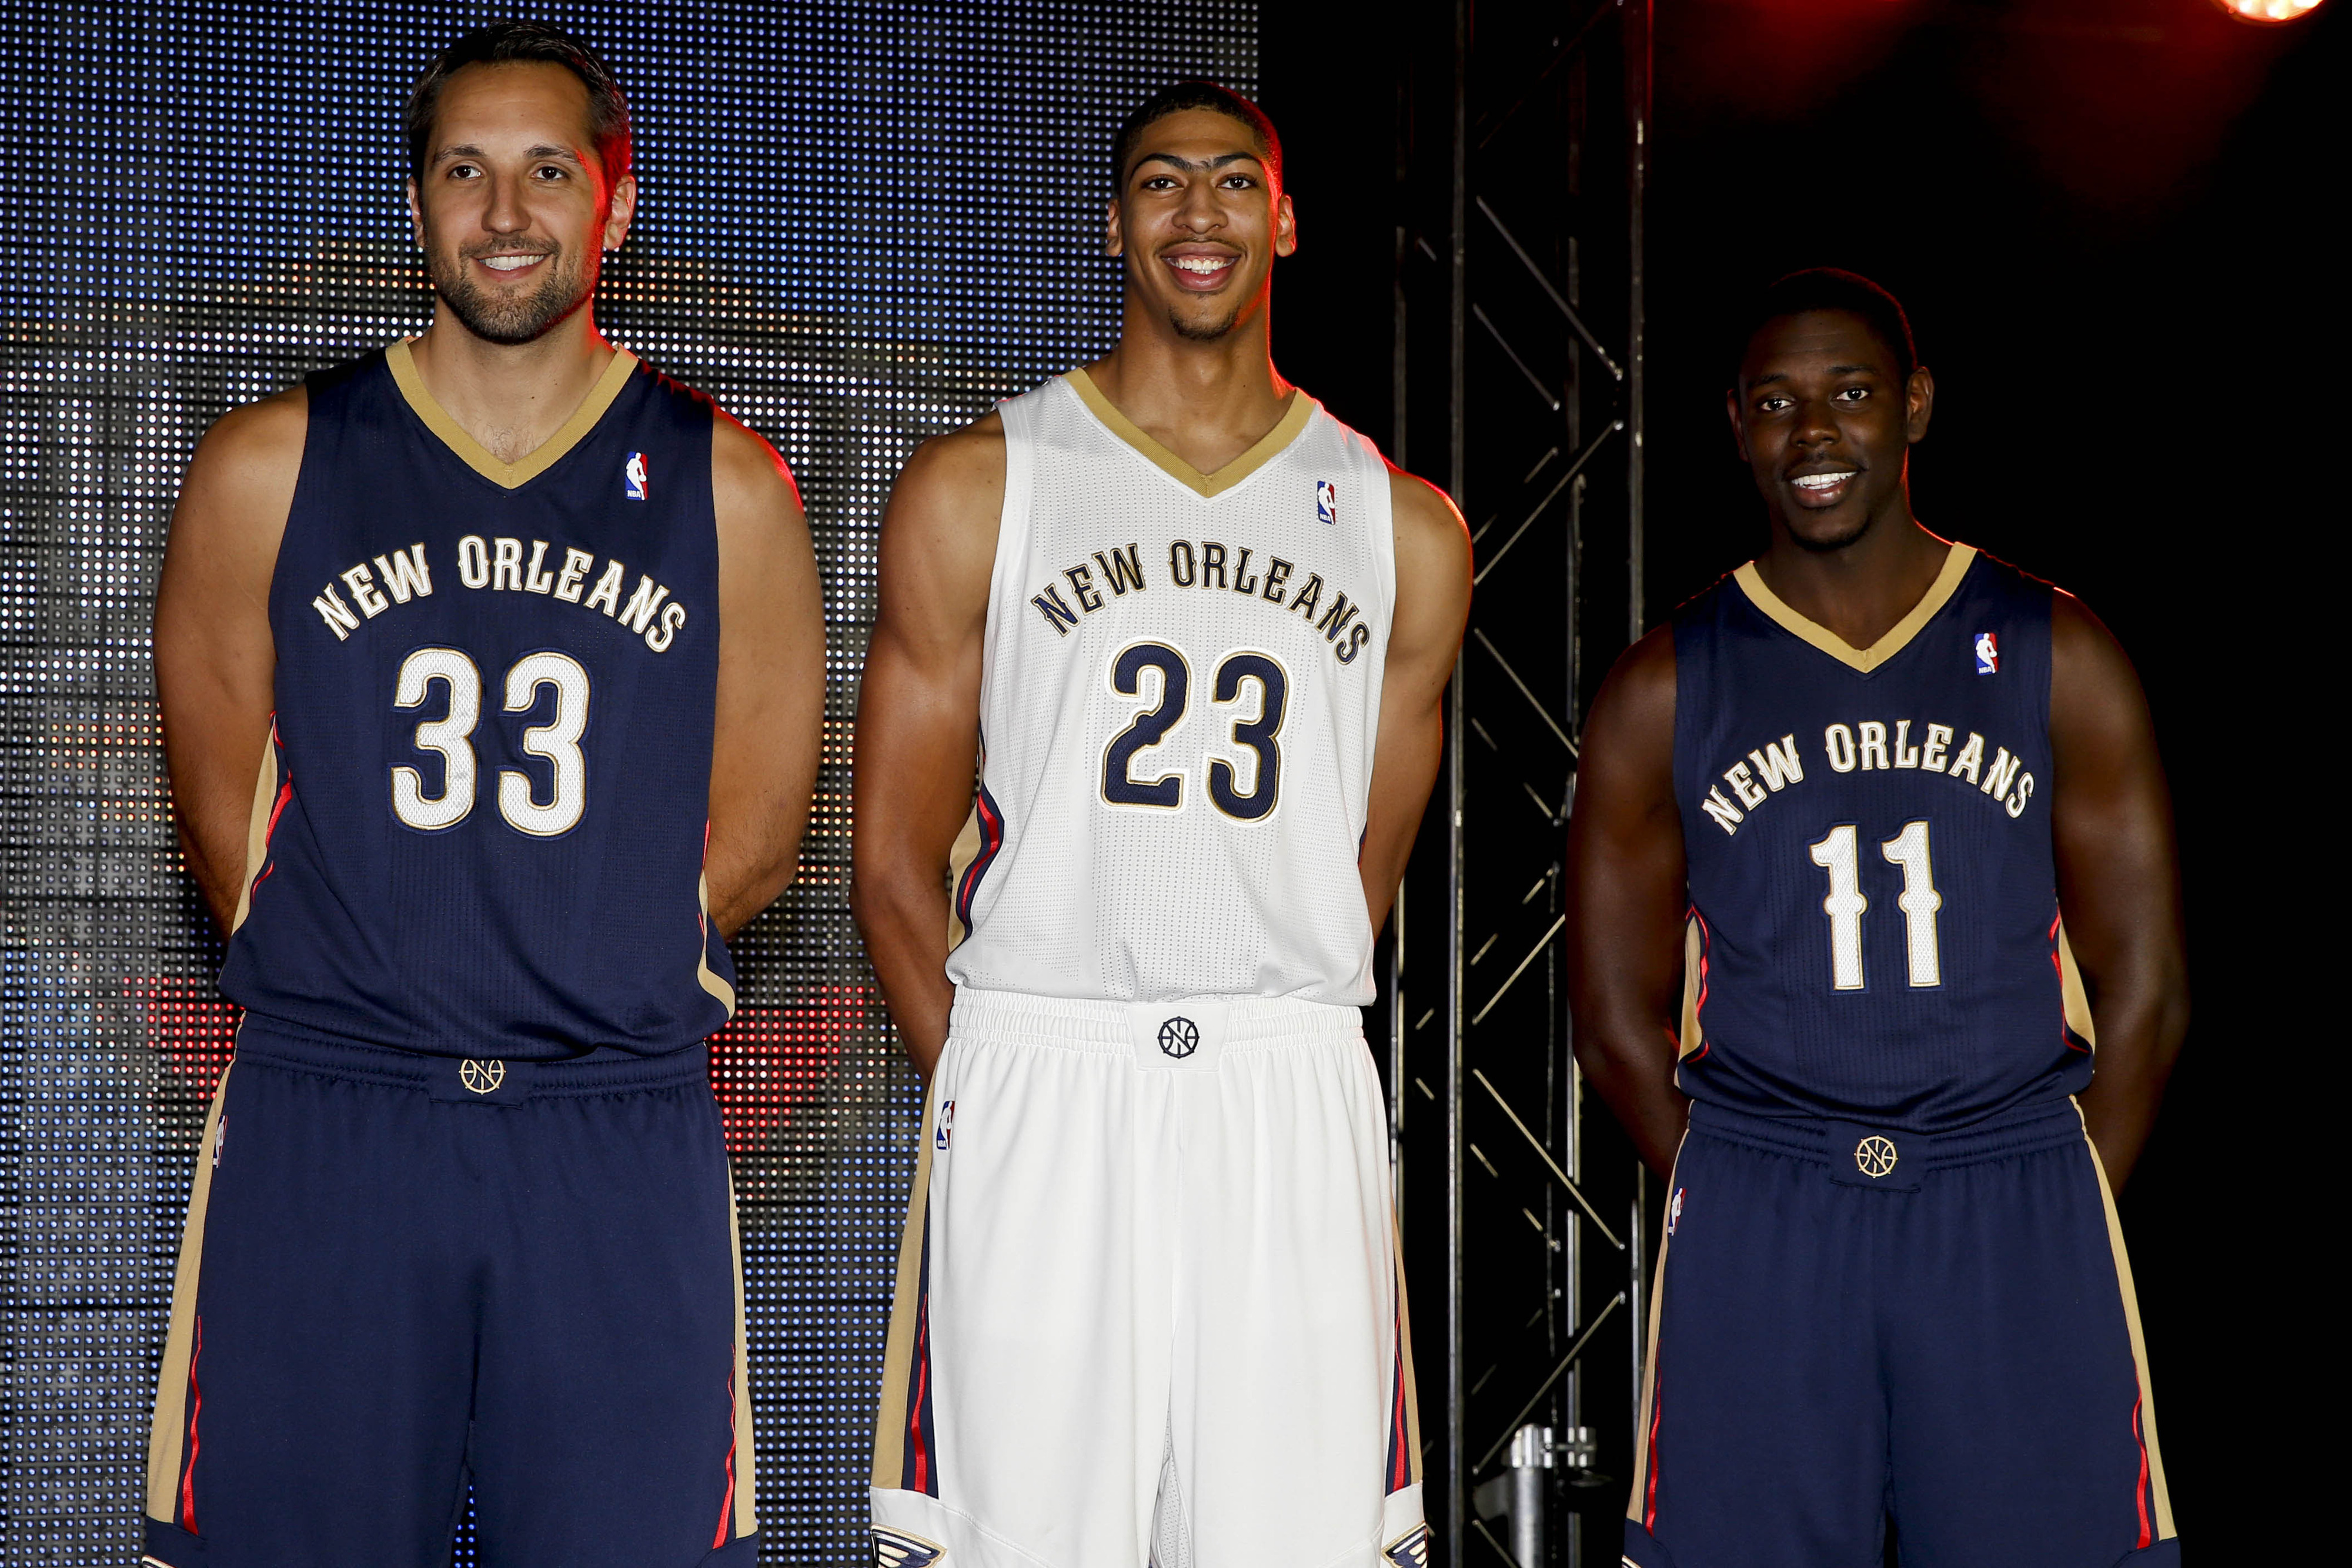 2013 New Orleans Pelicans roster: Tyreke Evans and Jrue Holiday.